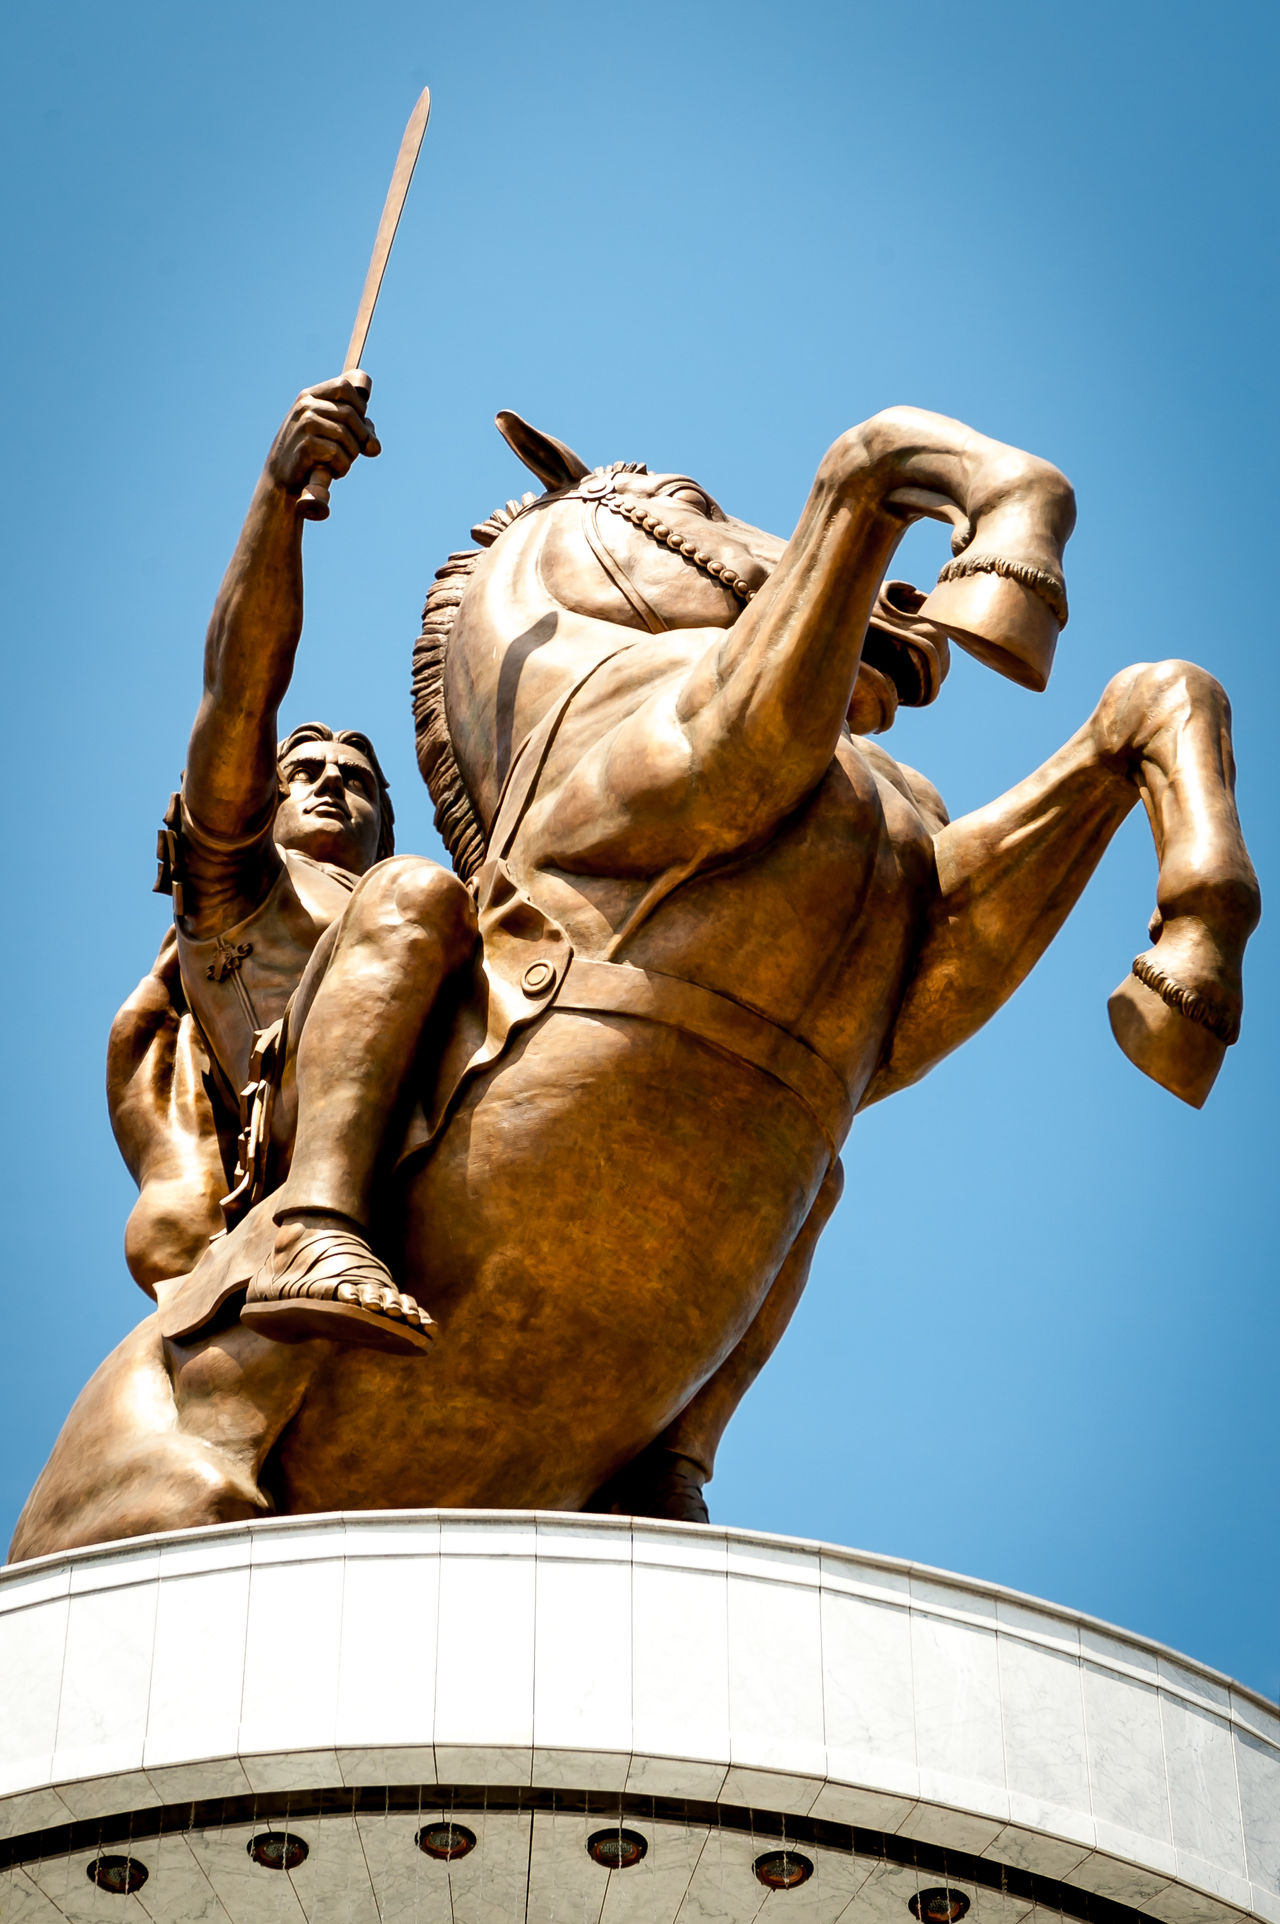 Alexander the great statue in Skopje center ALEXANDER THE GREAT GREEK LEADER Architecture Bronze - Alloy City Clear Sky Day Human Representation Low Angle View Macedonia No People Outdoors Sculpture Skopje Sky Statue Statue Travel Destinations